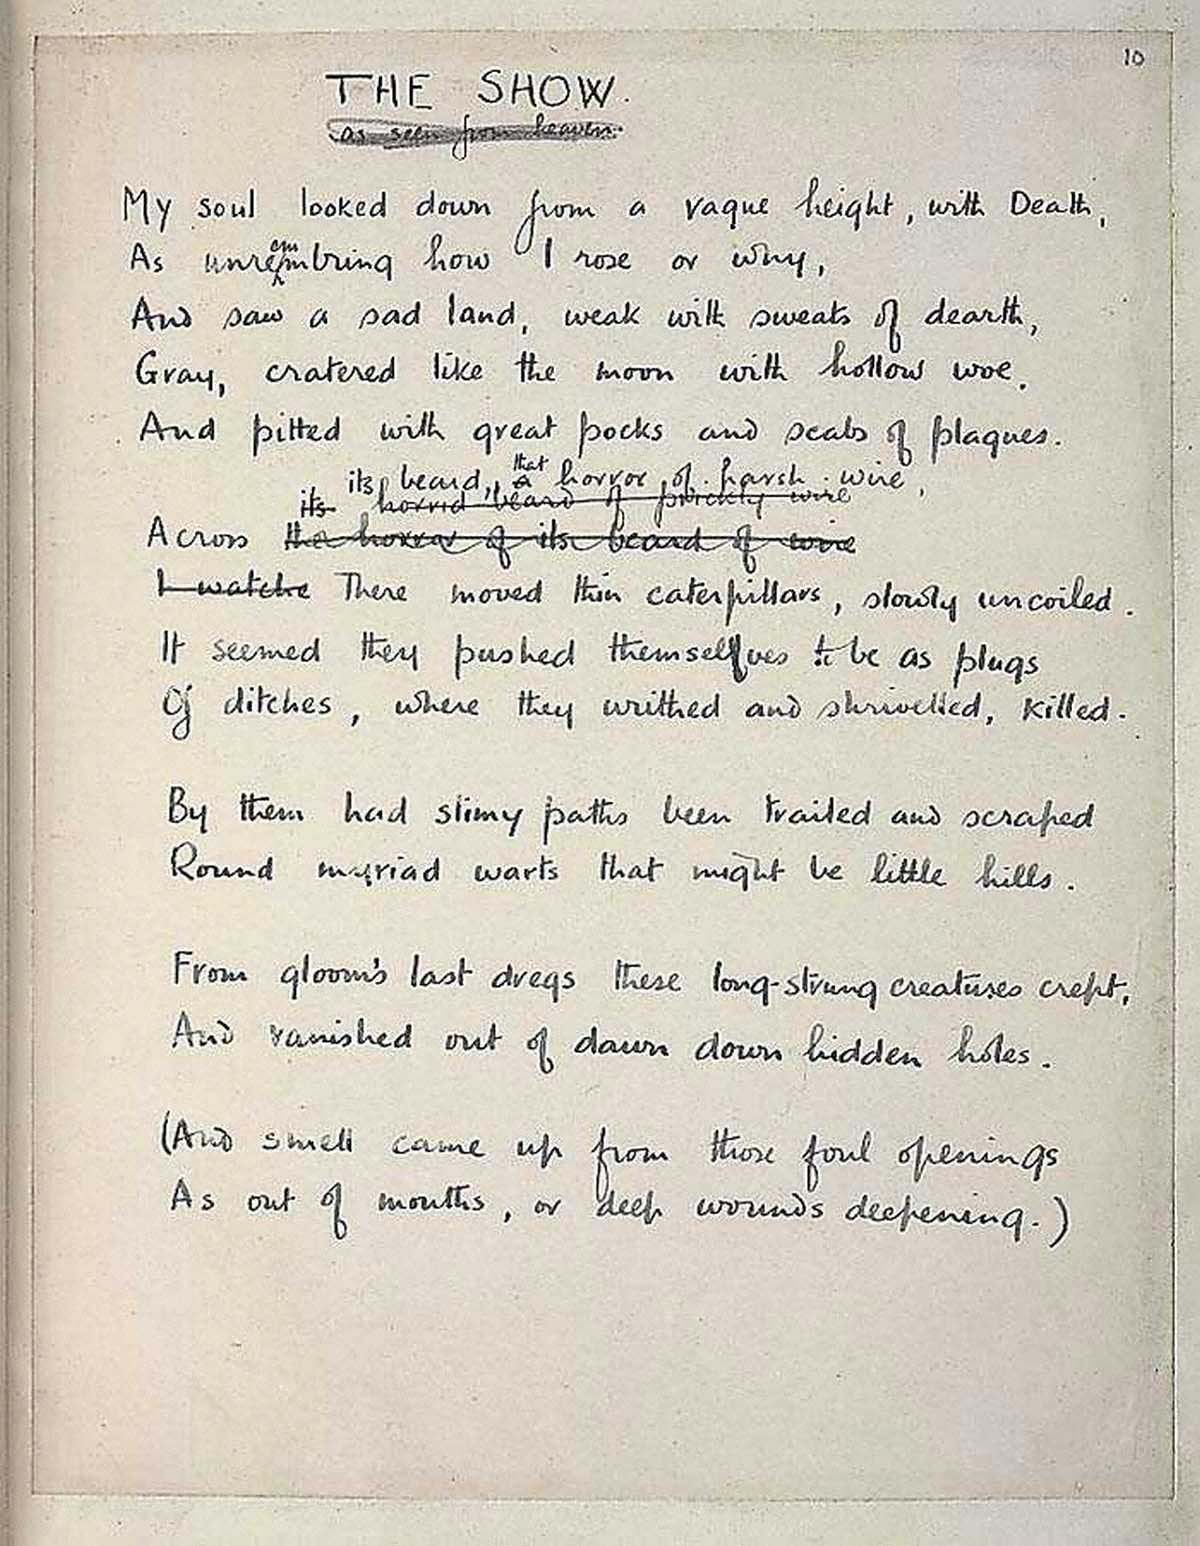 War poems wilfred owen essay help